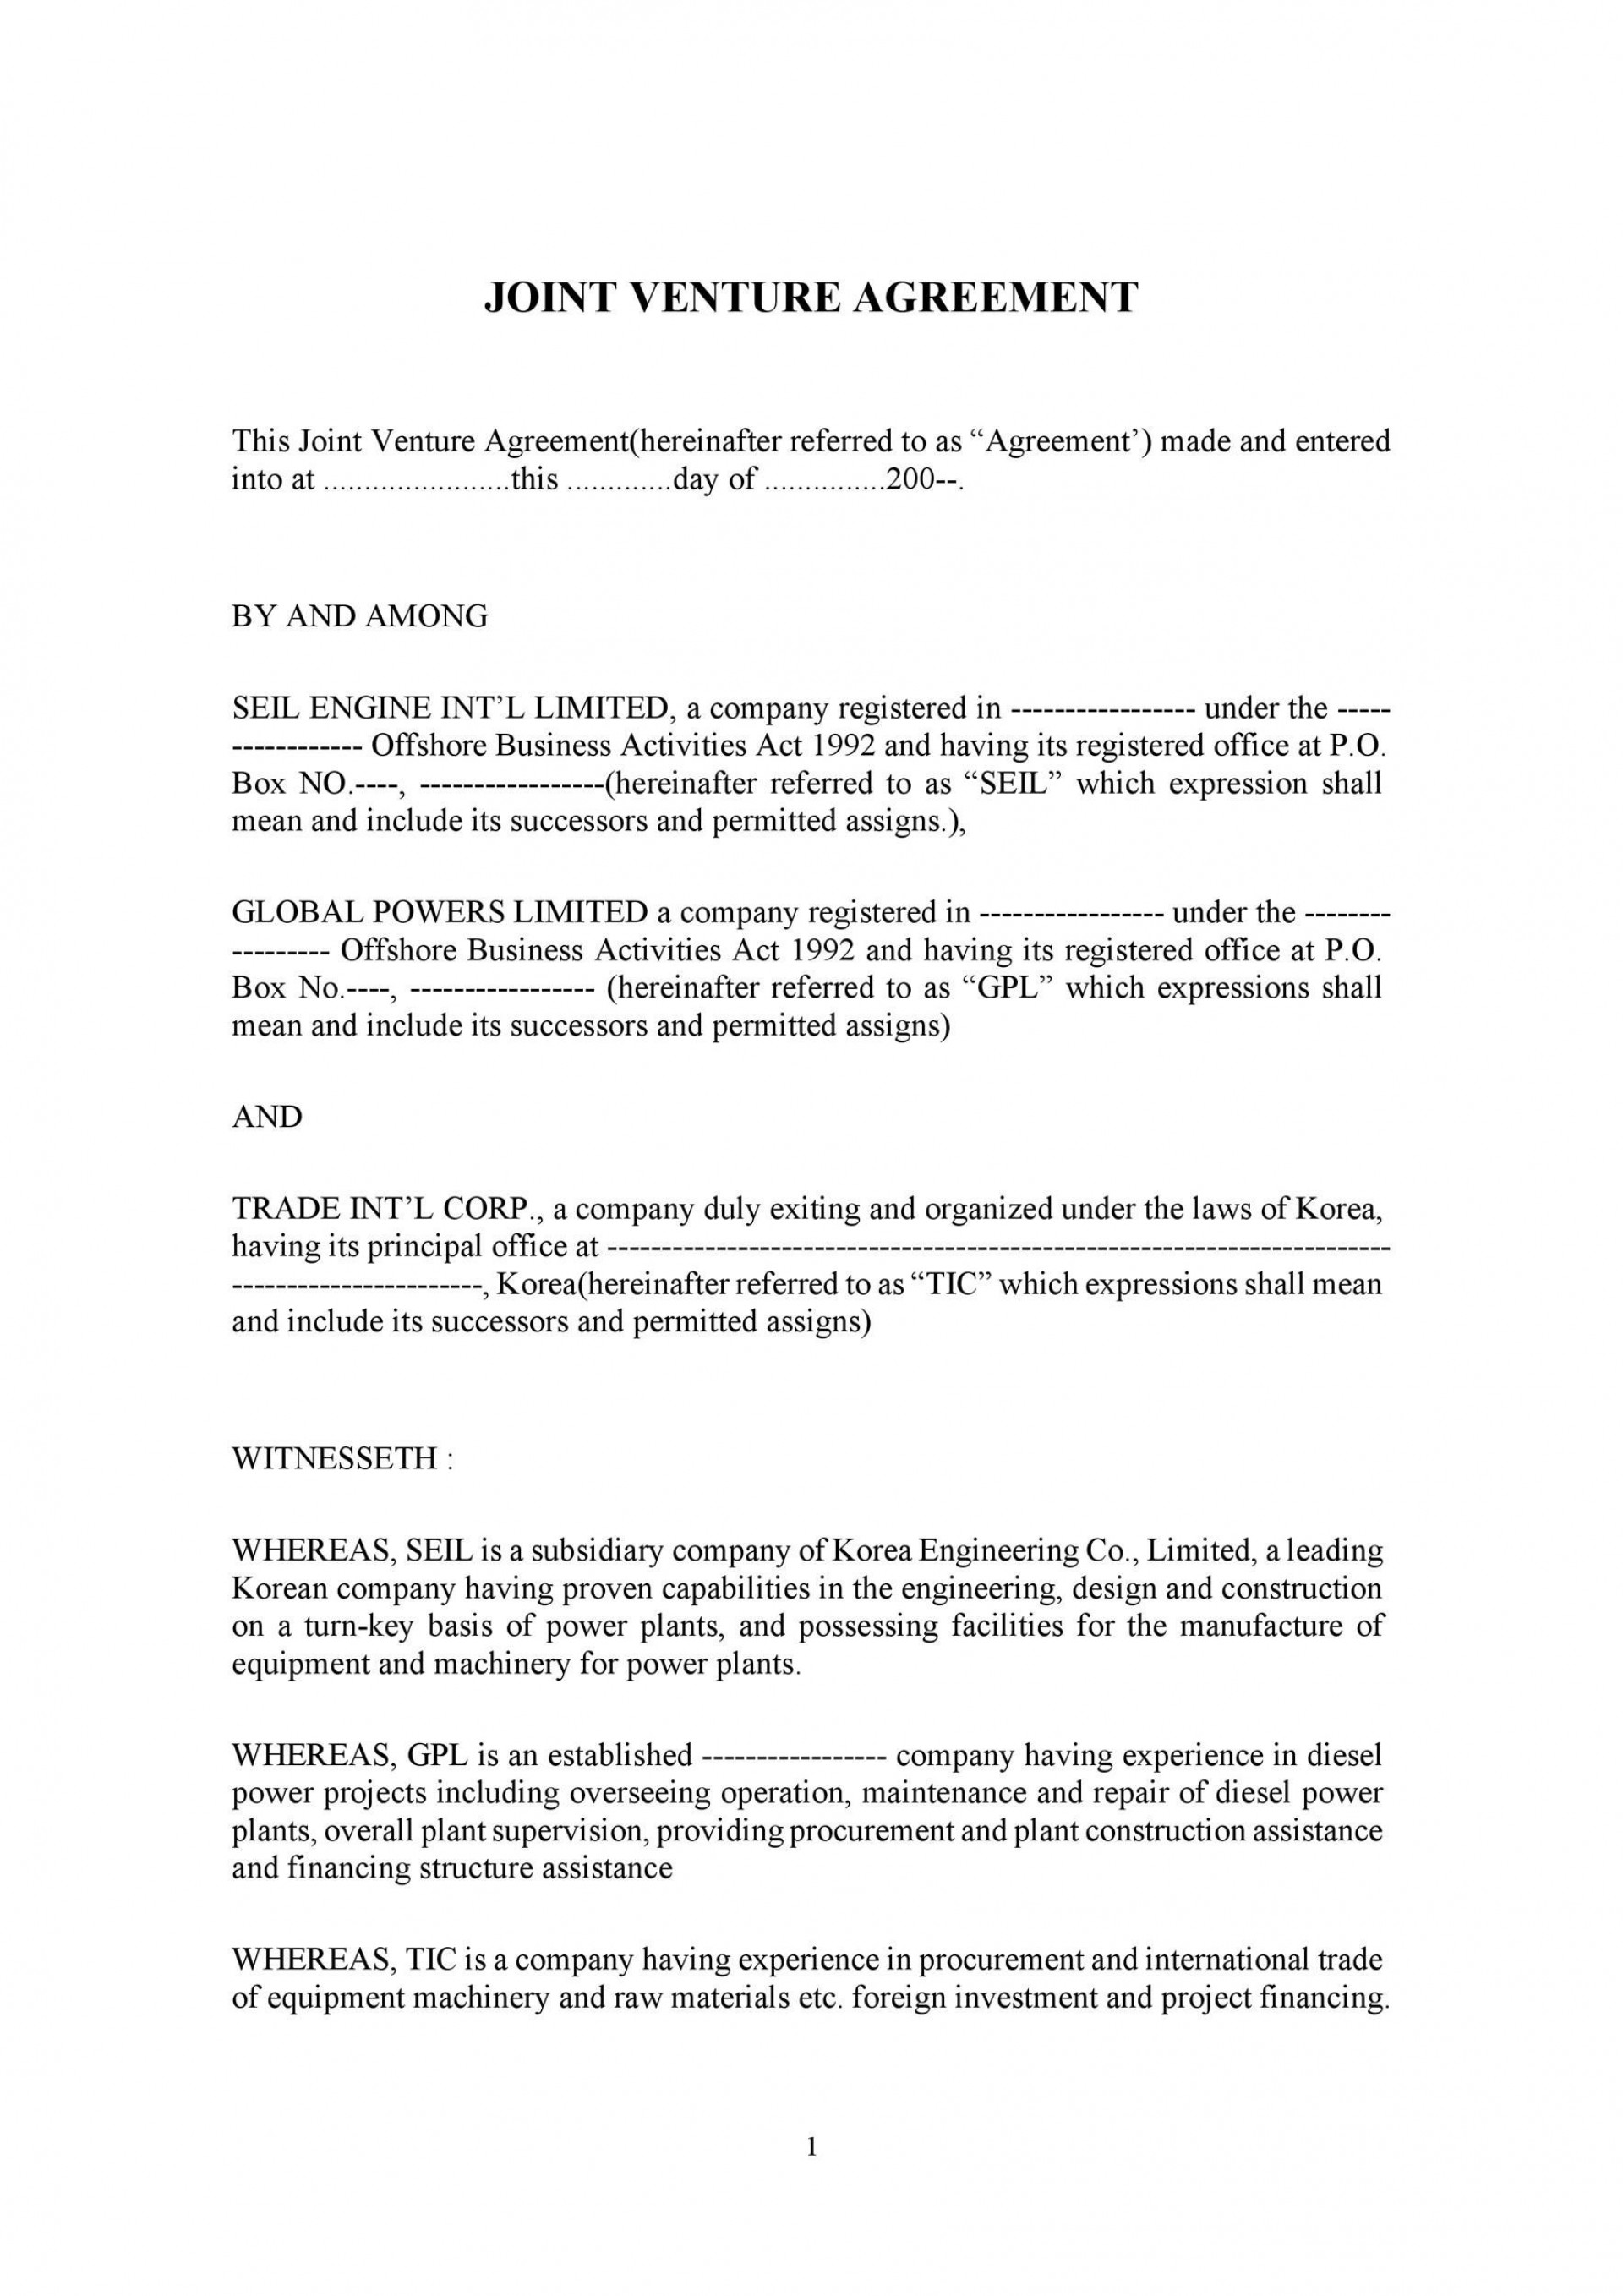 004 Outstanding Contractual Joint Venture Agreement Template Uk Image 1920